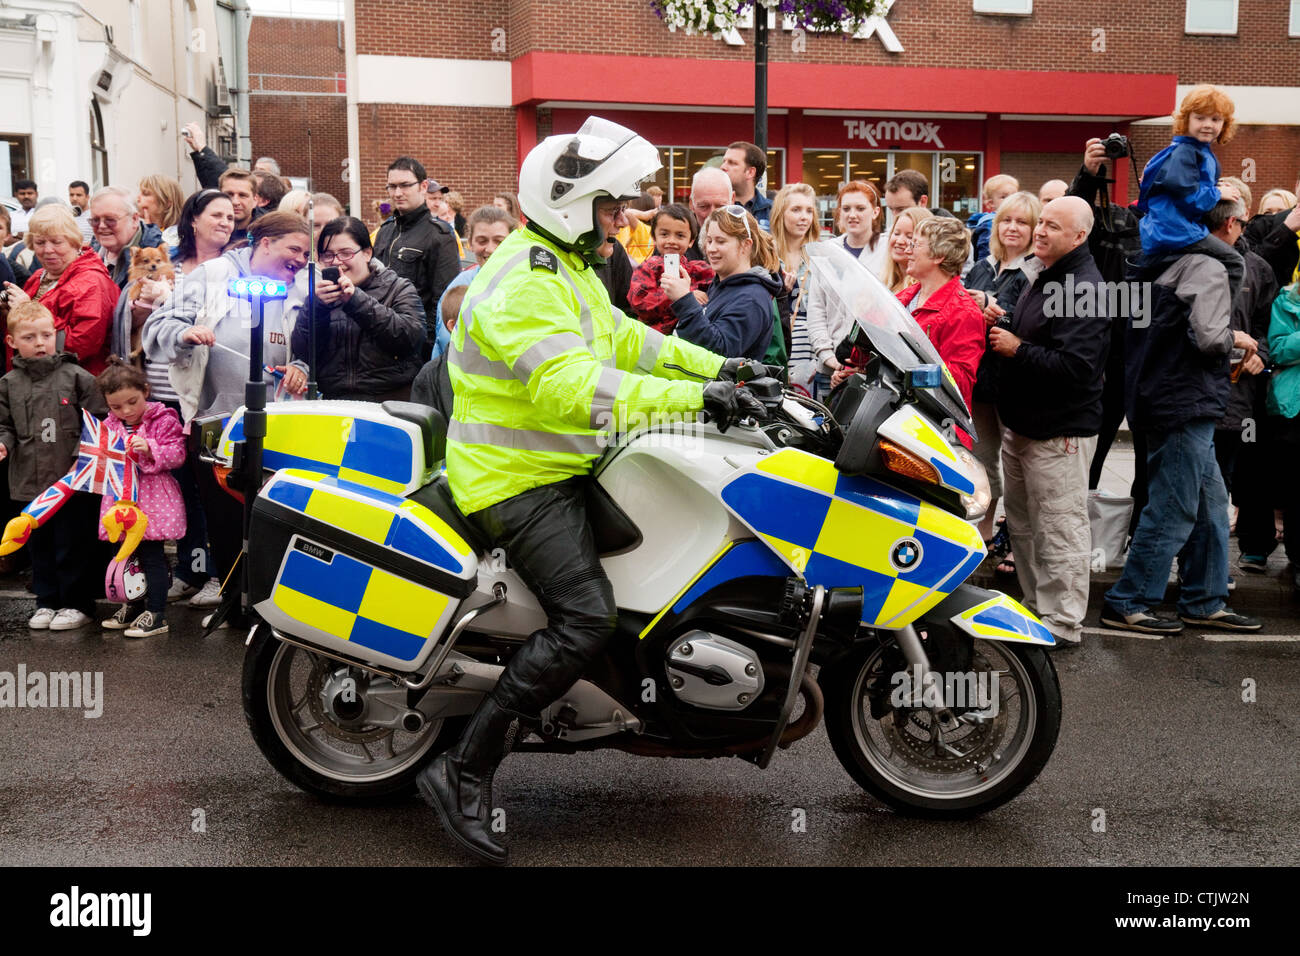 Policeman on motorcycle patrol, 2012 Olympic Torch relay, Newmarket Suffolk UK - Stock Image